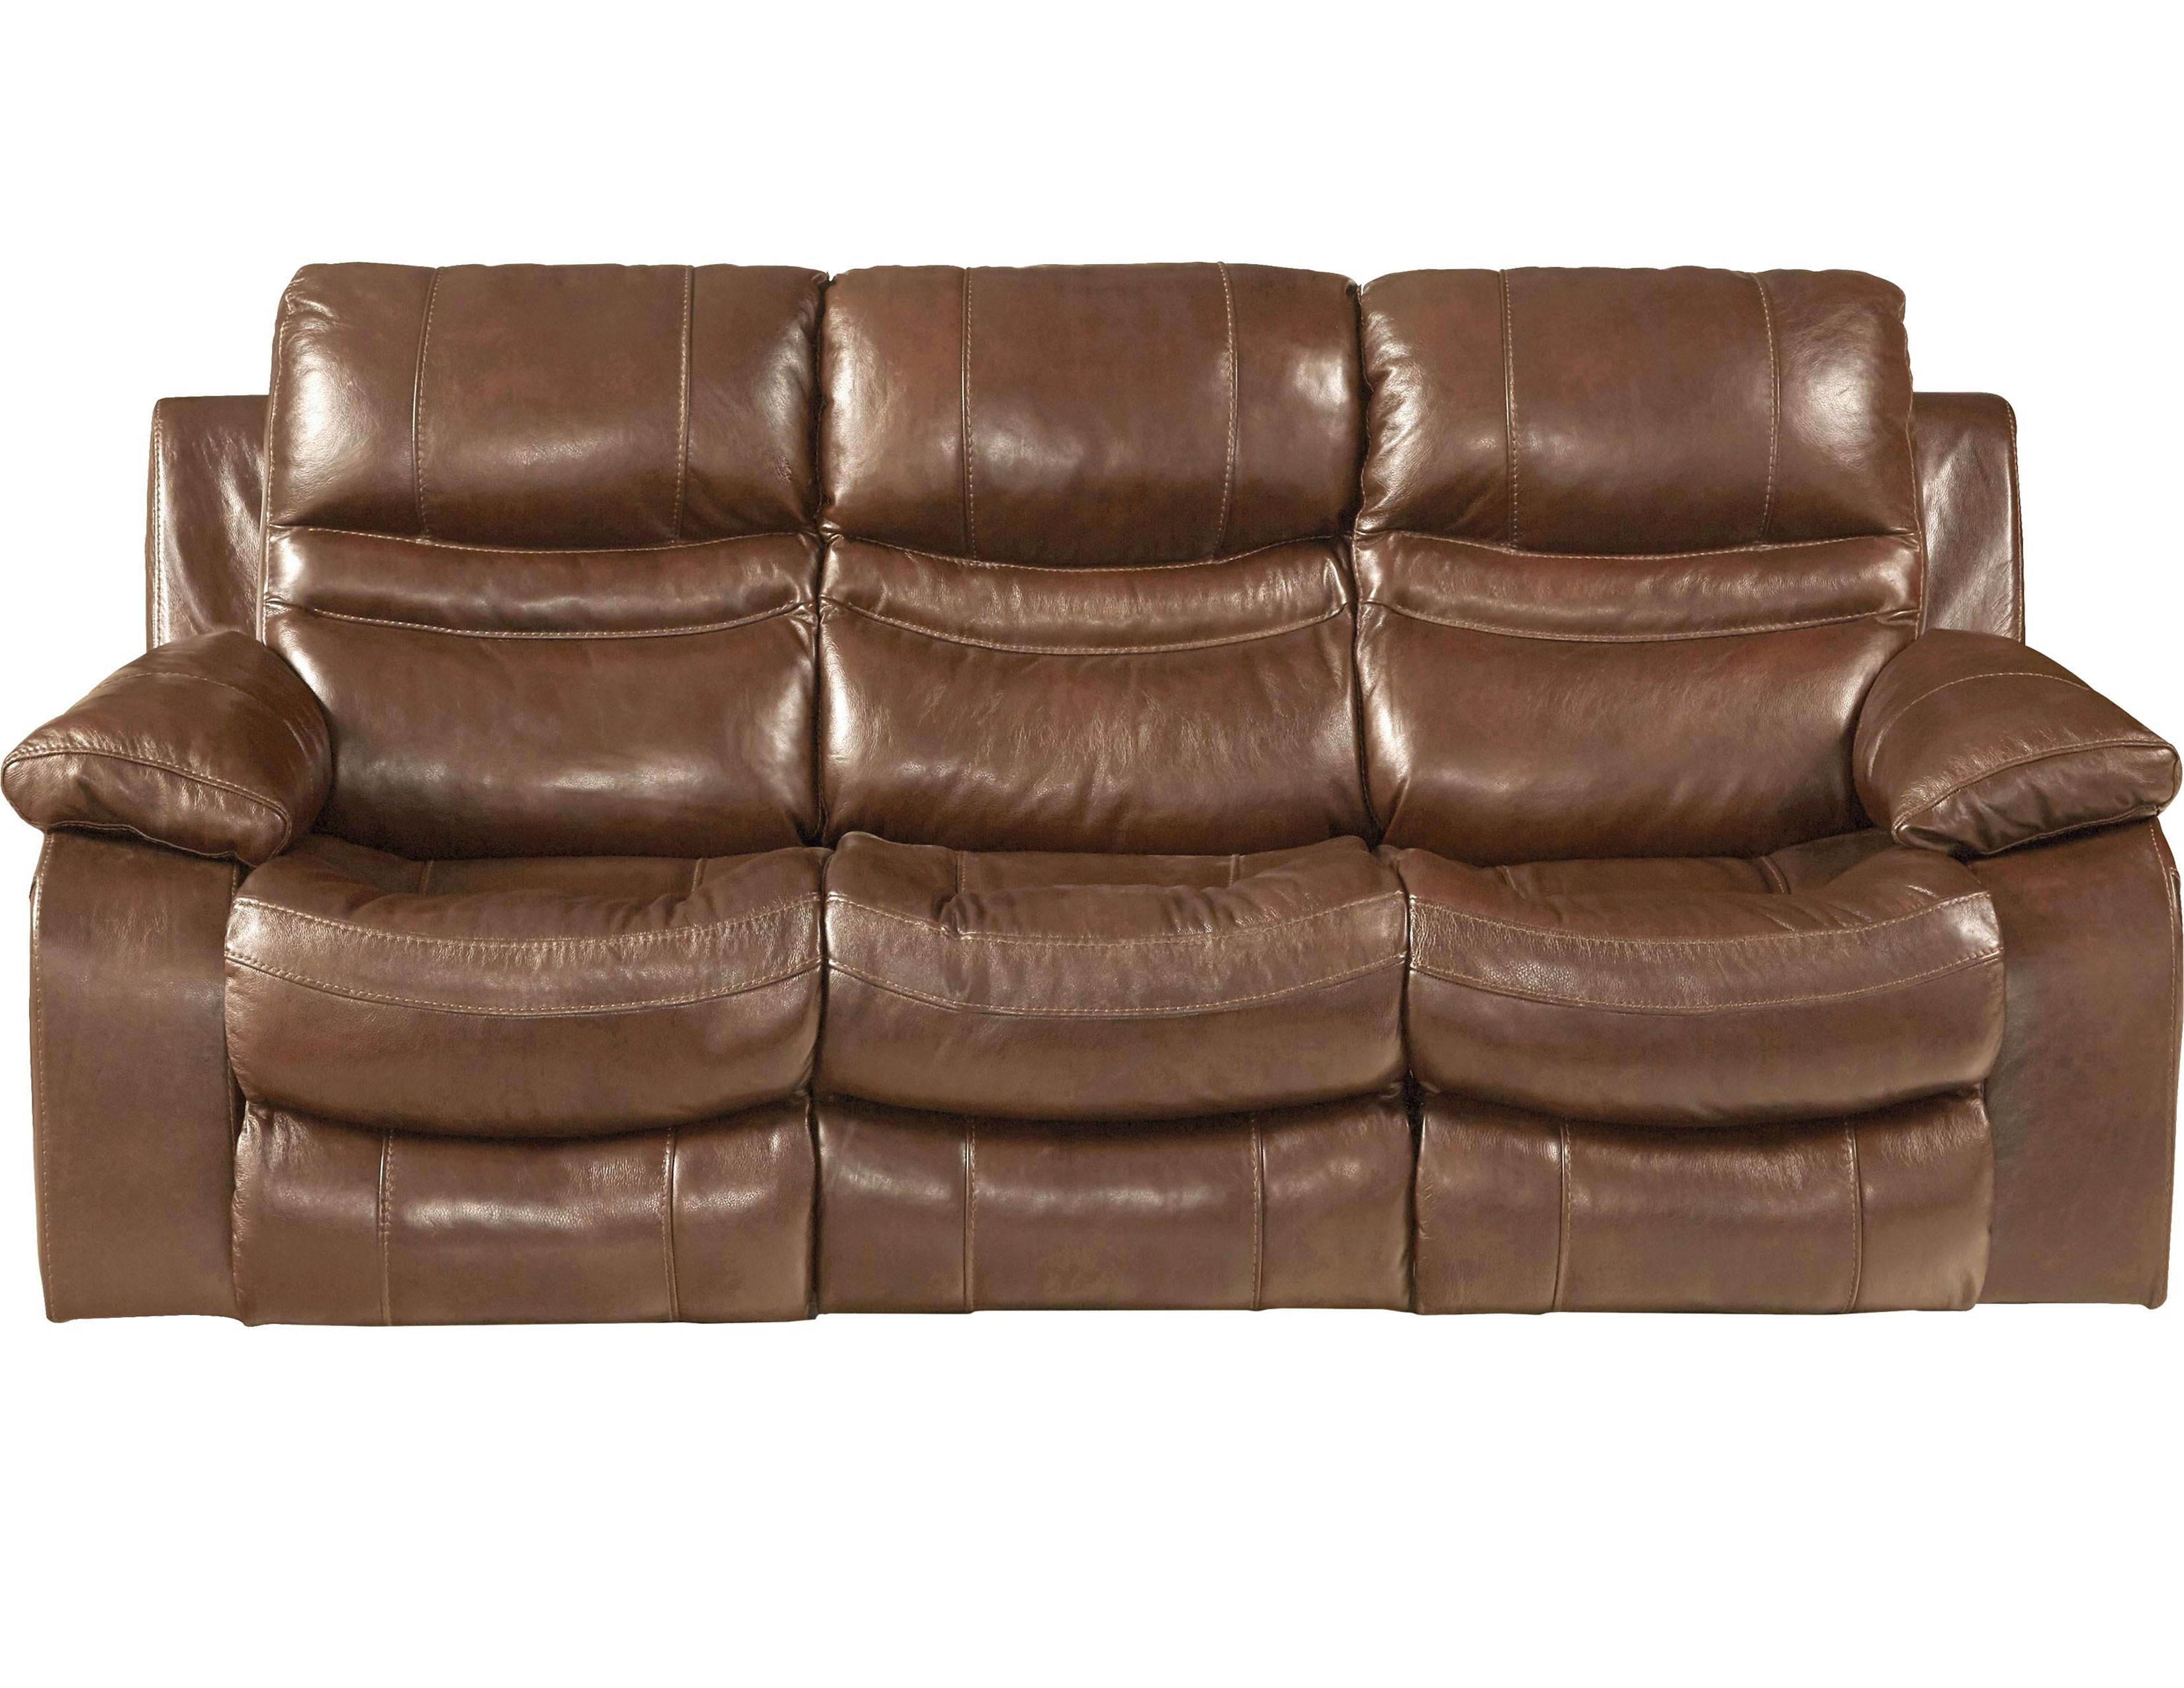 Enjoyable Best Leather Reclining Sofa For The Money Gmtry Best Dining Table And Chair Ideas Images Gmtryco